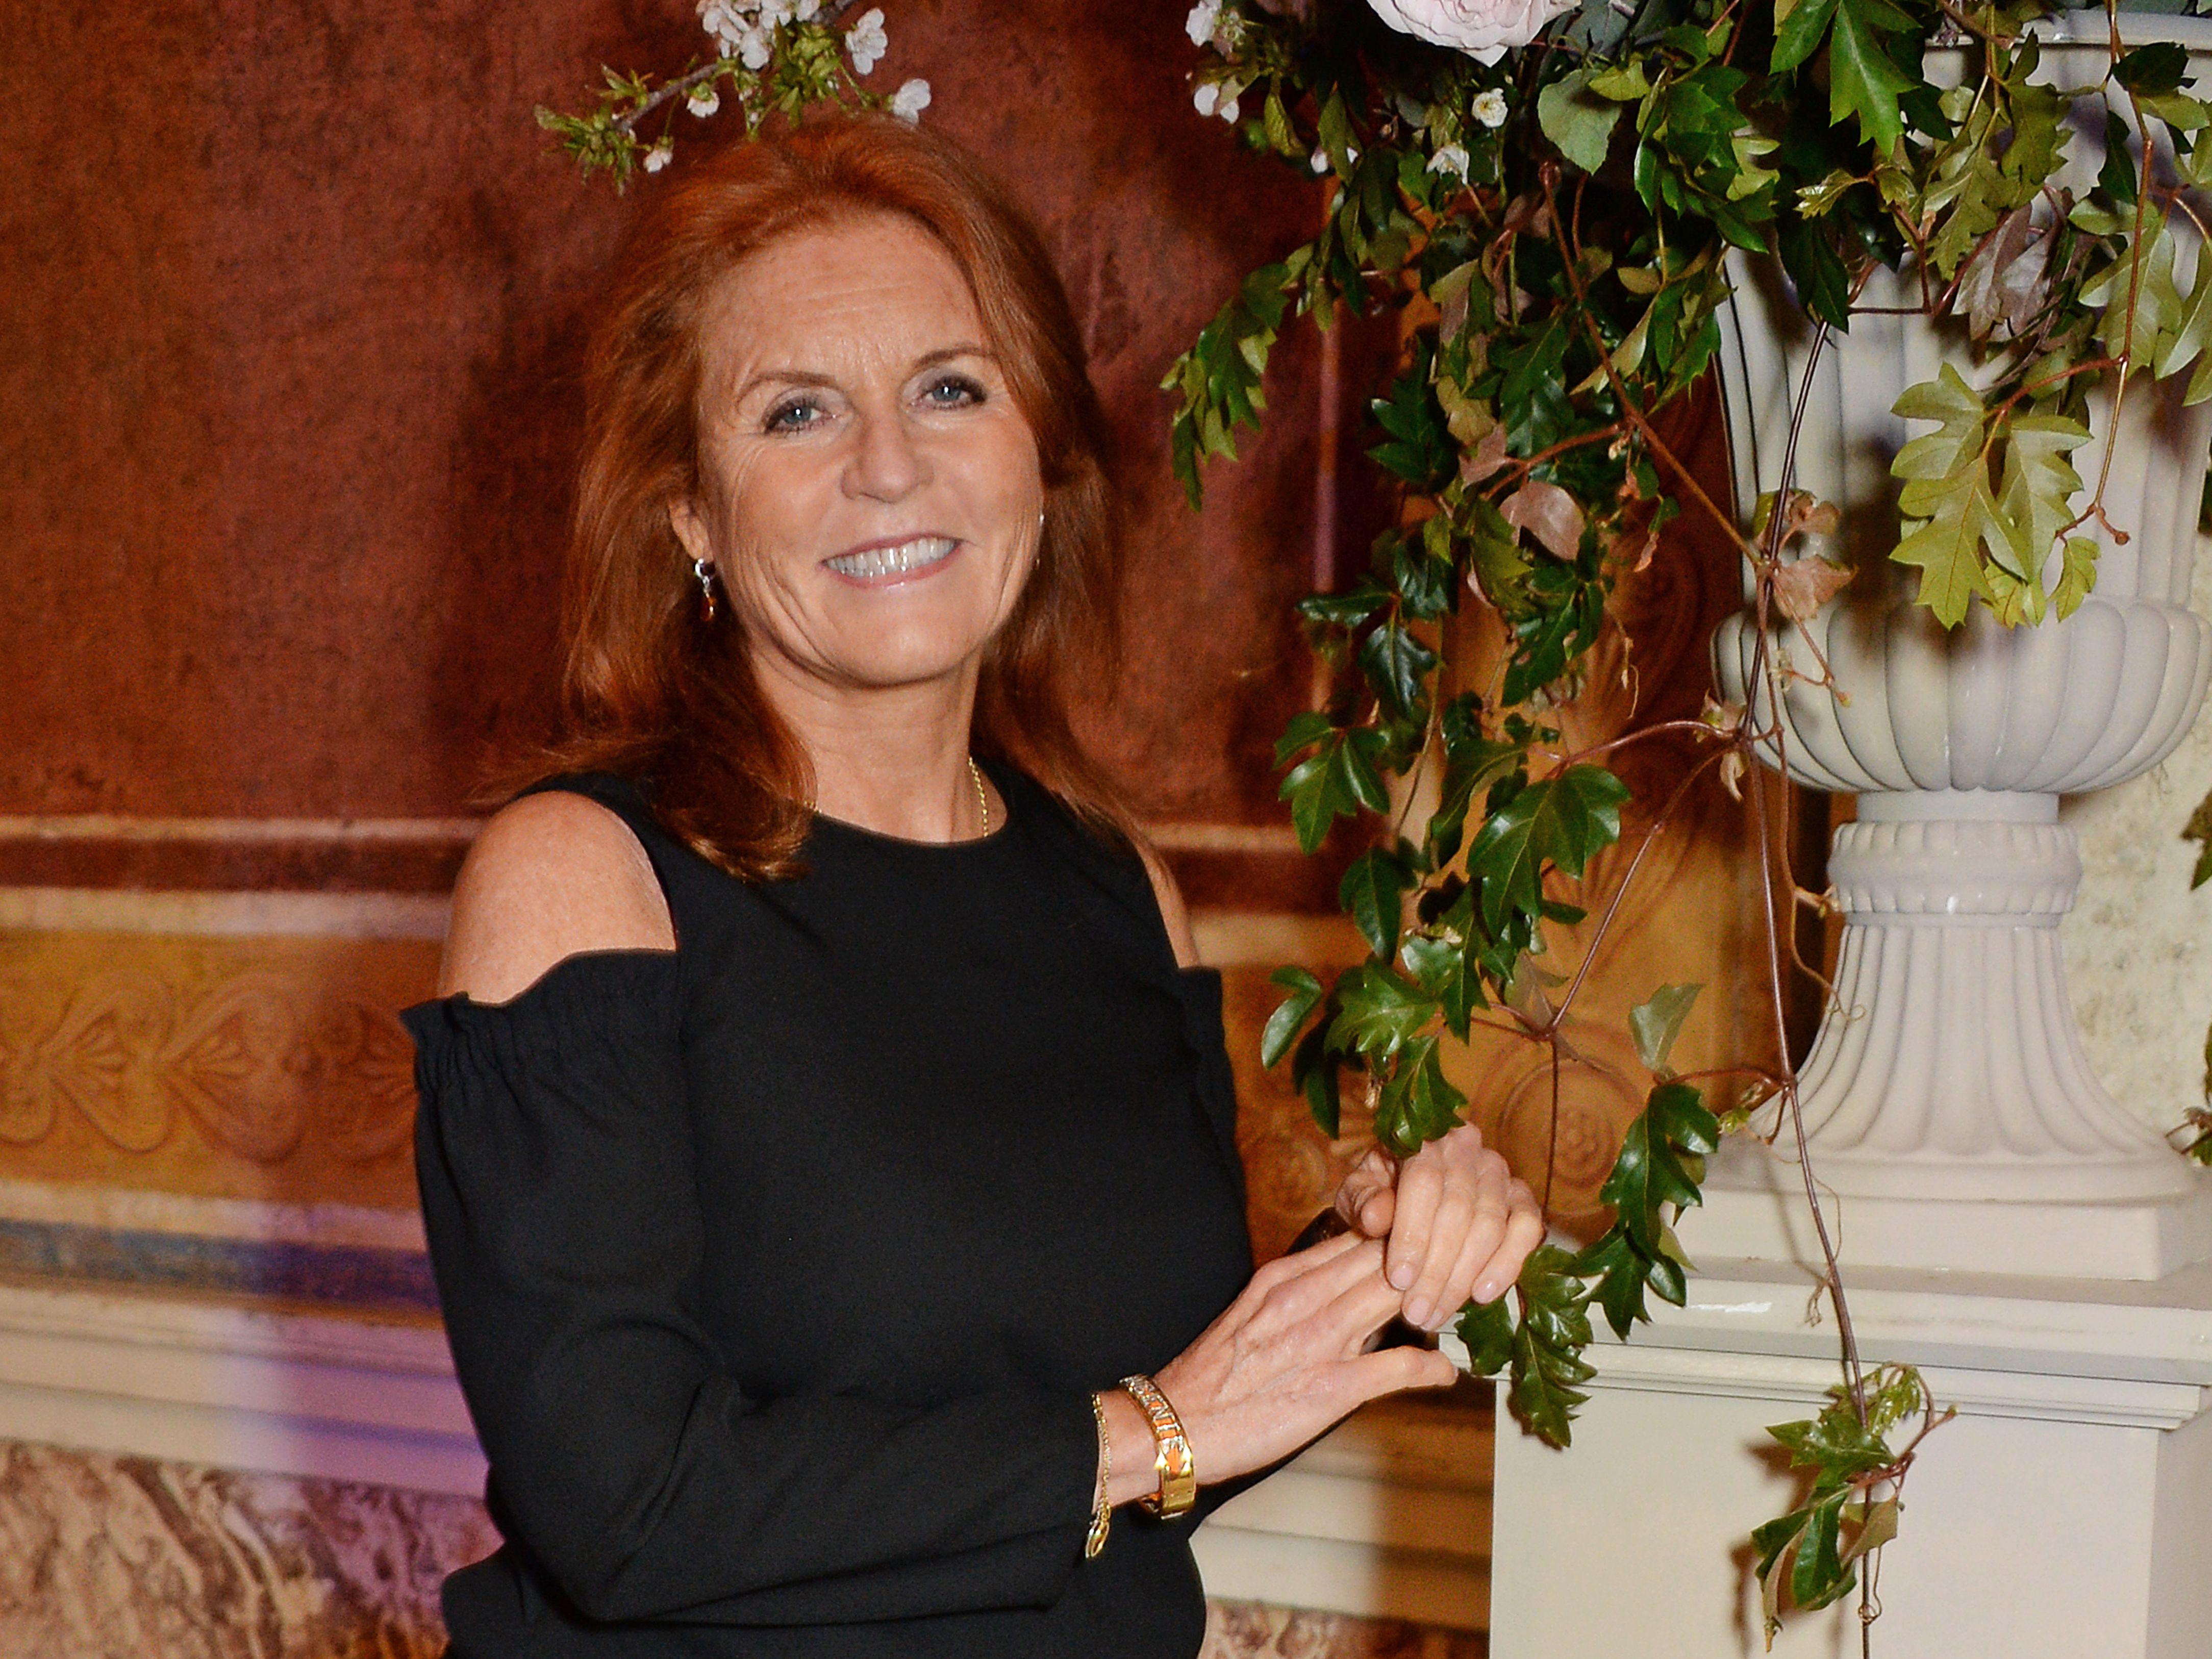 Royal Wedding Reception.Sarah Ferguson The Duchess Of York Was Reportedly Not Invited To